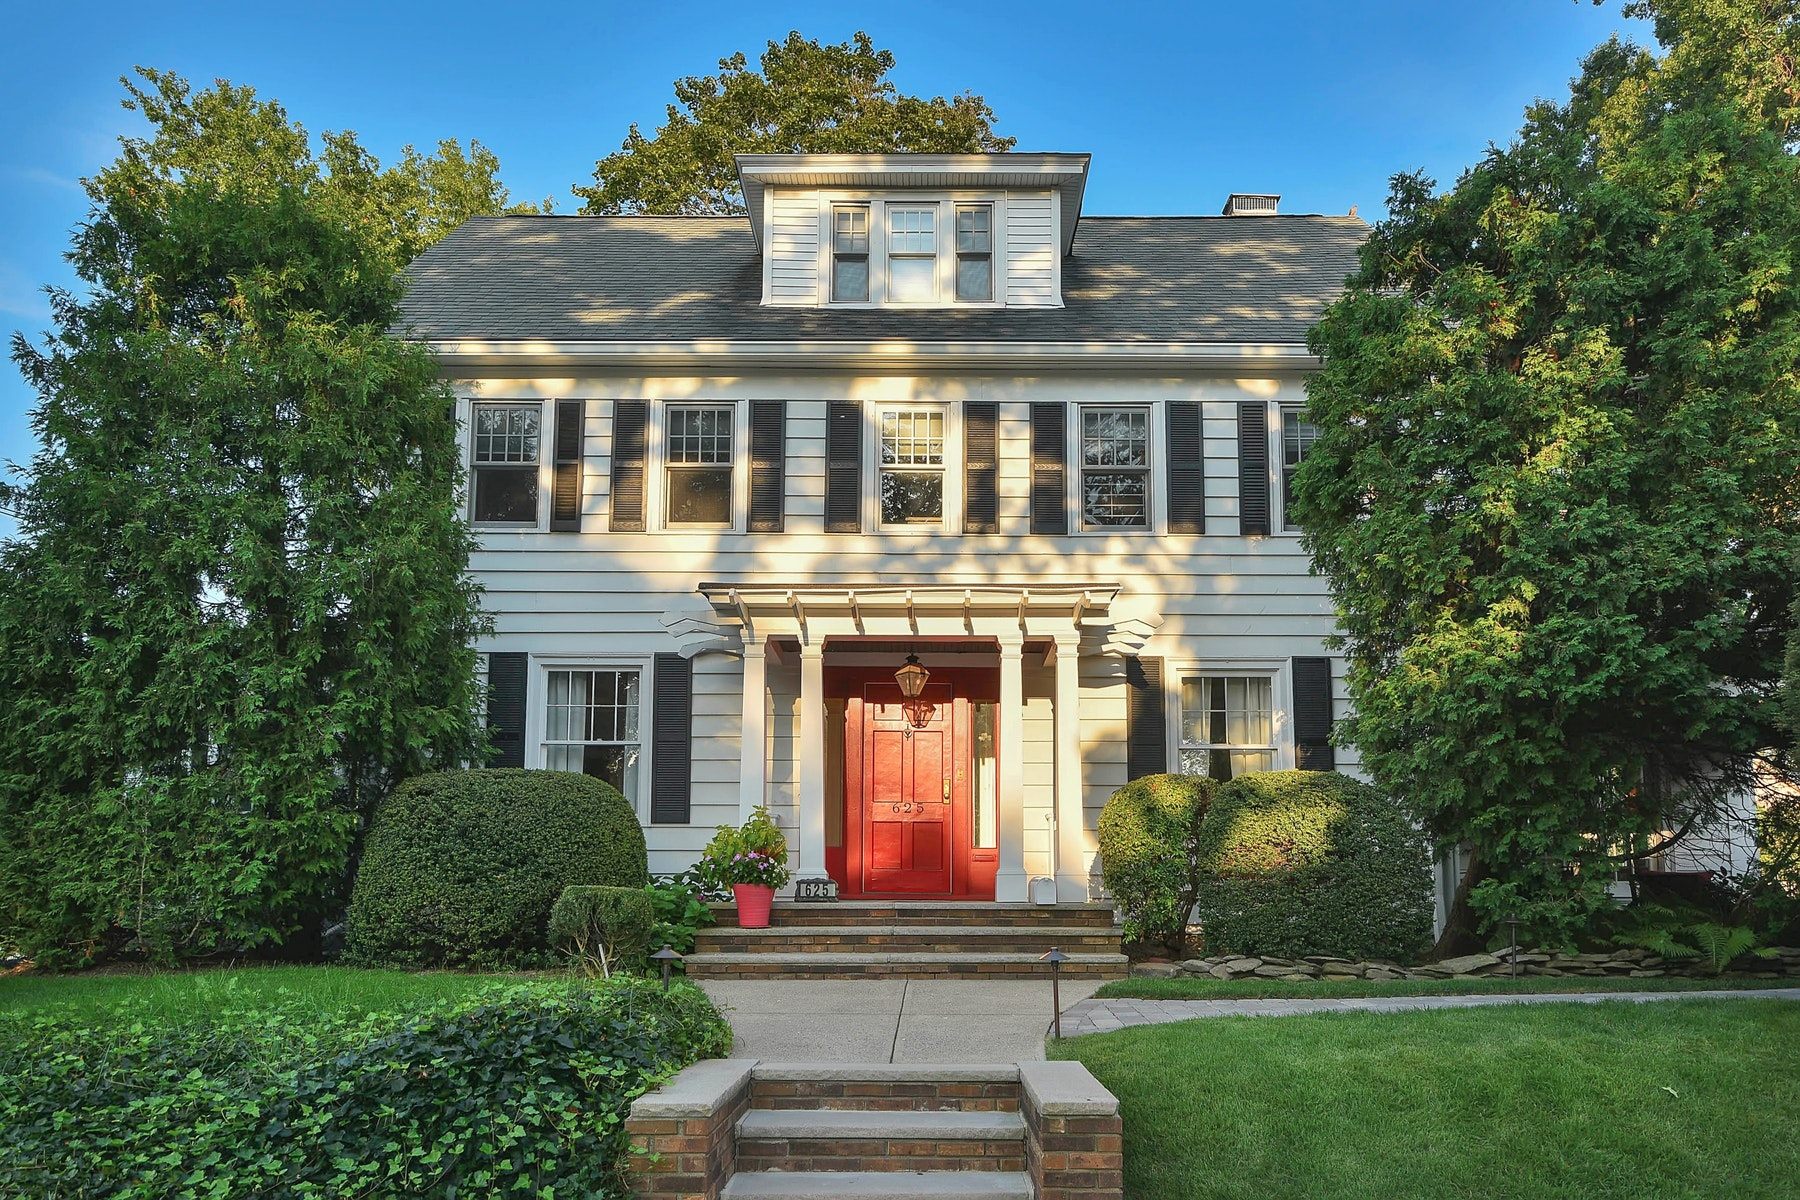 Single Family Home for Sale at 19th Century Center Hall Colonial 625 Trenton St., New Milford, New Jersey 07646 United States